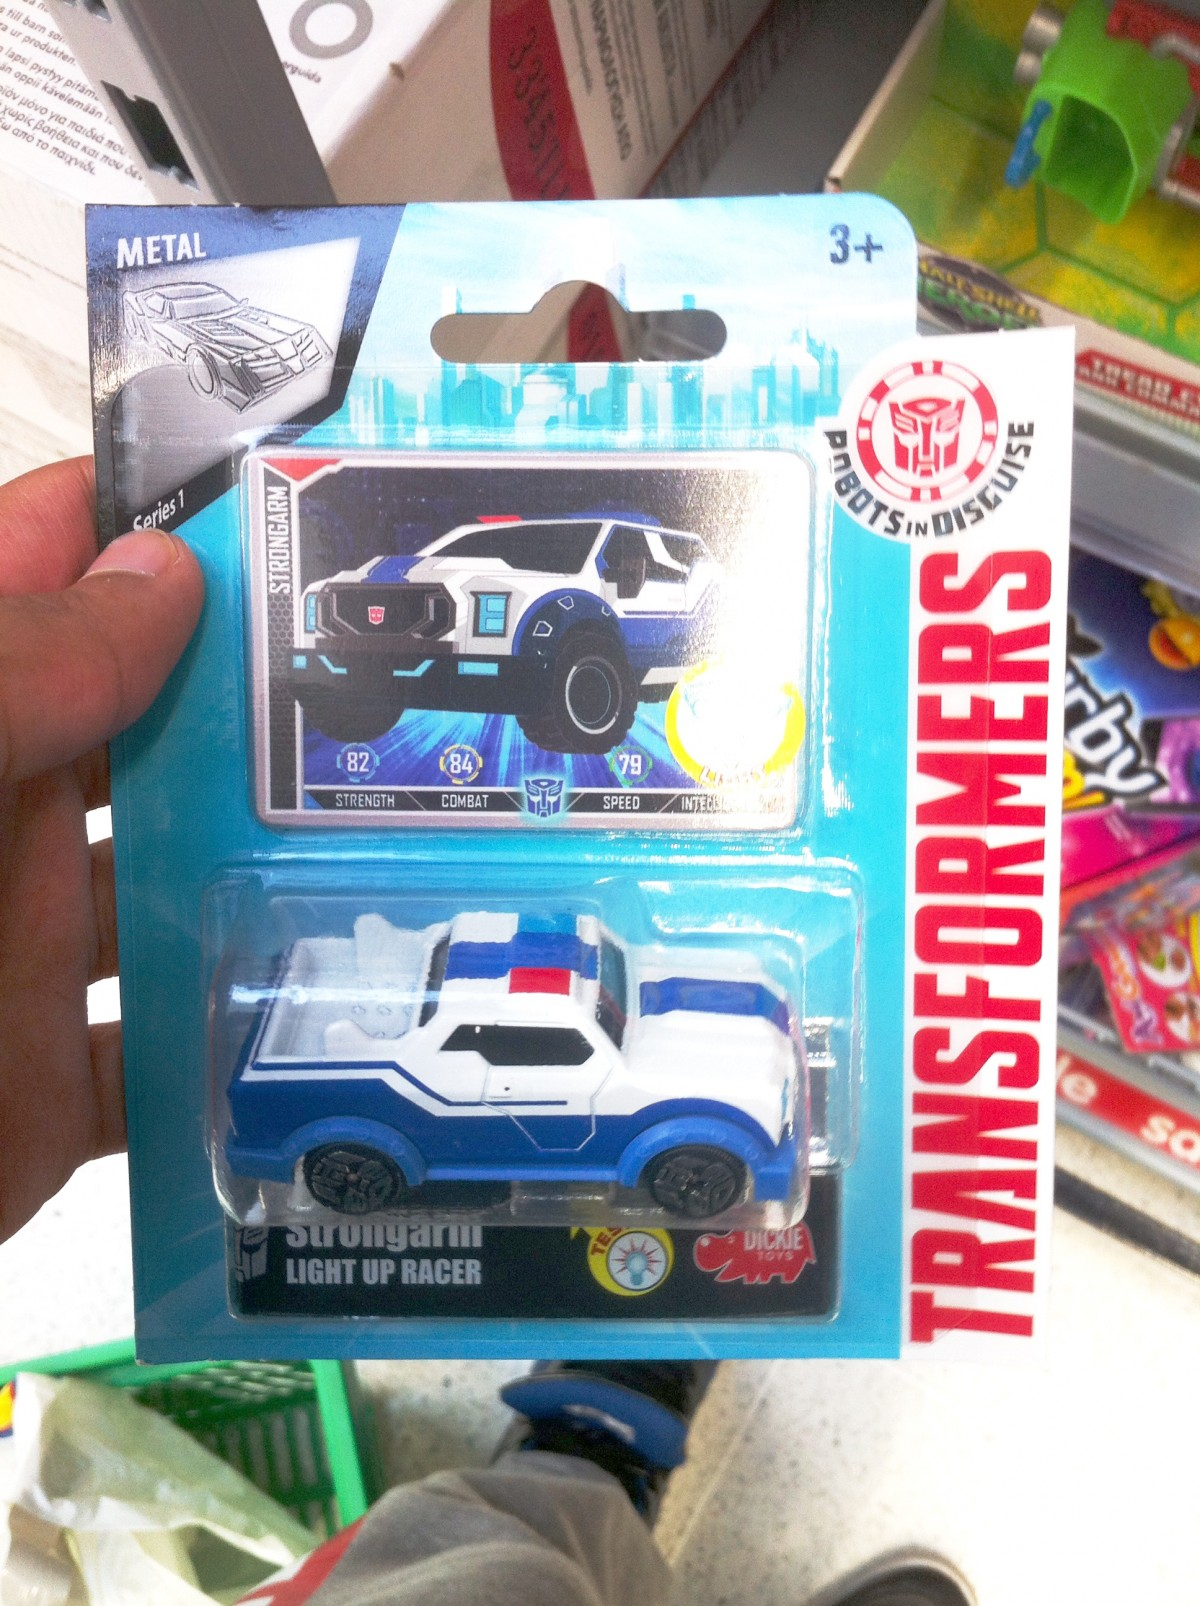 Transformers News: Transformers: Robots in Disguise Light Up Racers by Dickie Toys and R/C Bumblebee Sighted in UK